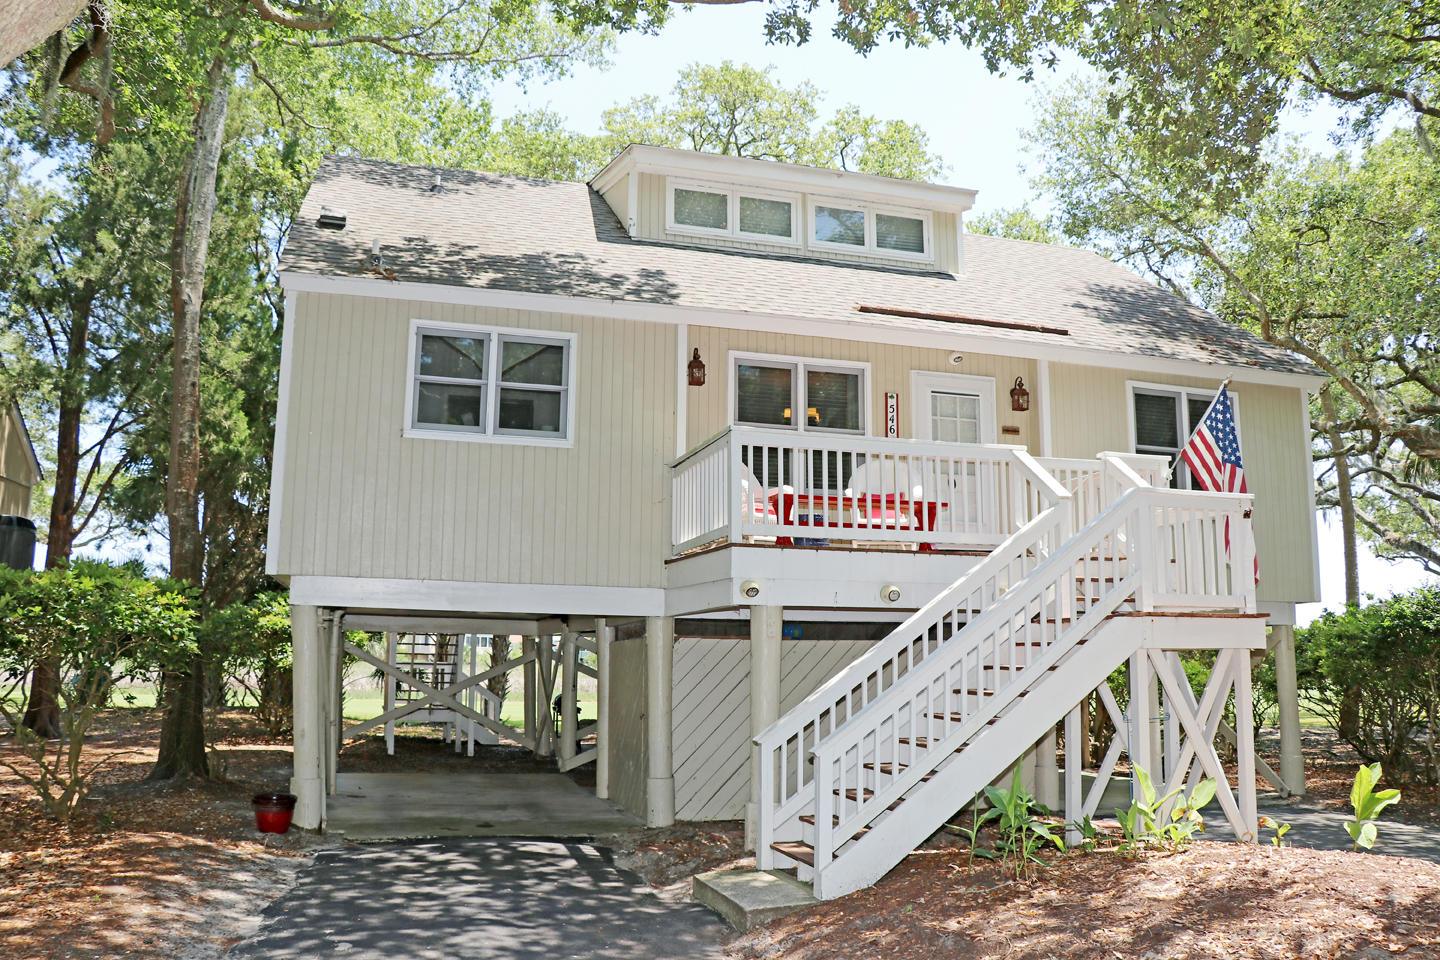 Tarpon Pond Cottages Homes For Sale - 546 Cobby Creek, Seabrook Island, SC - 23